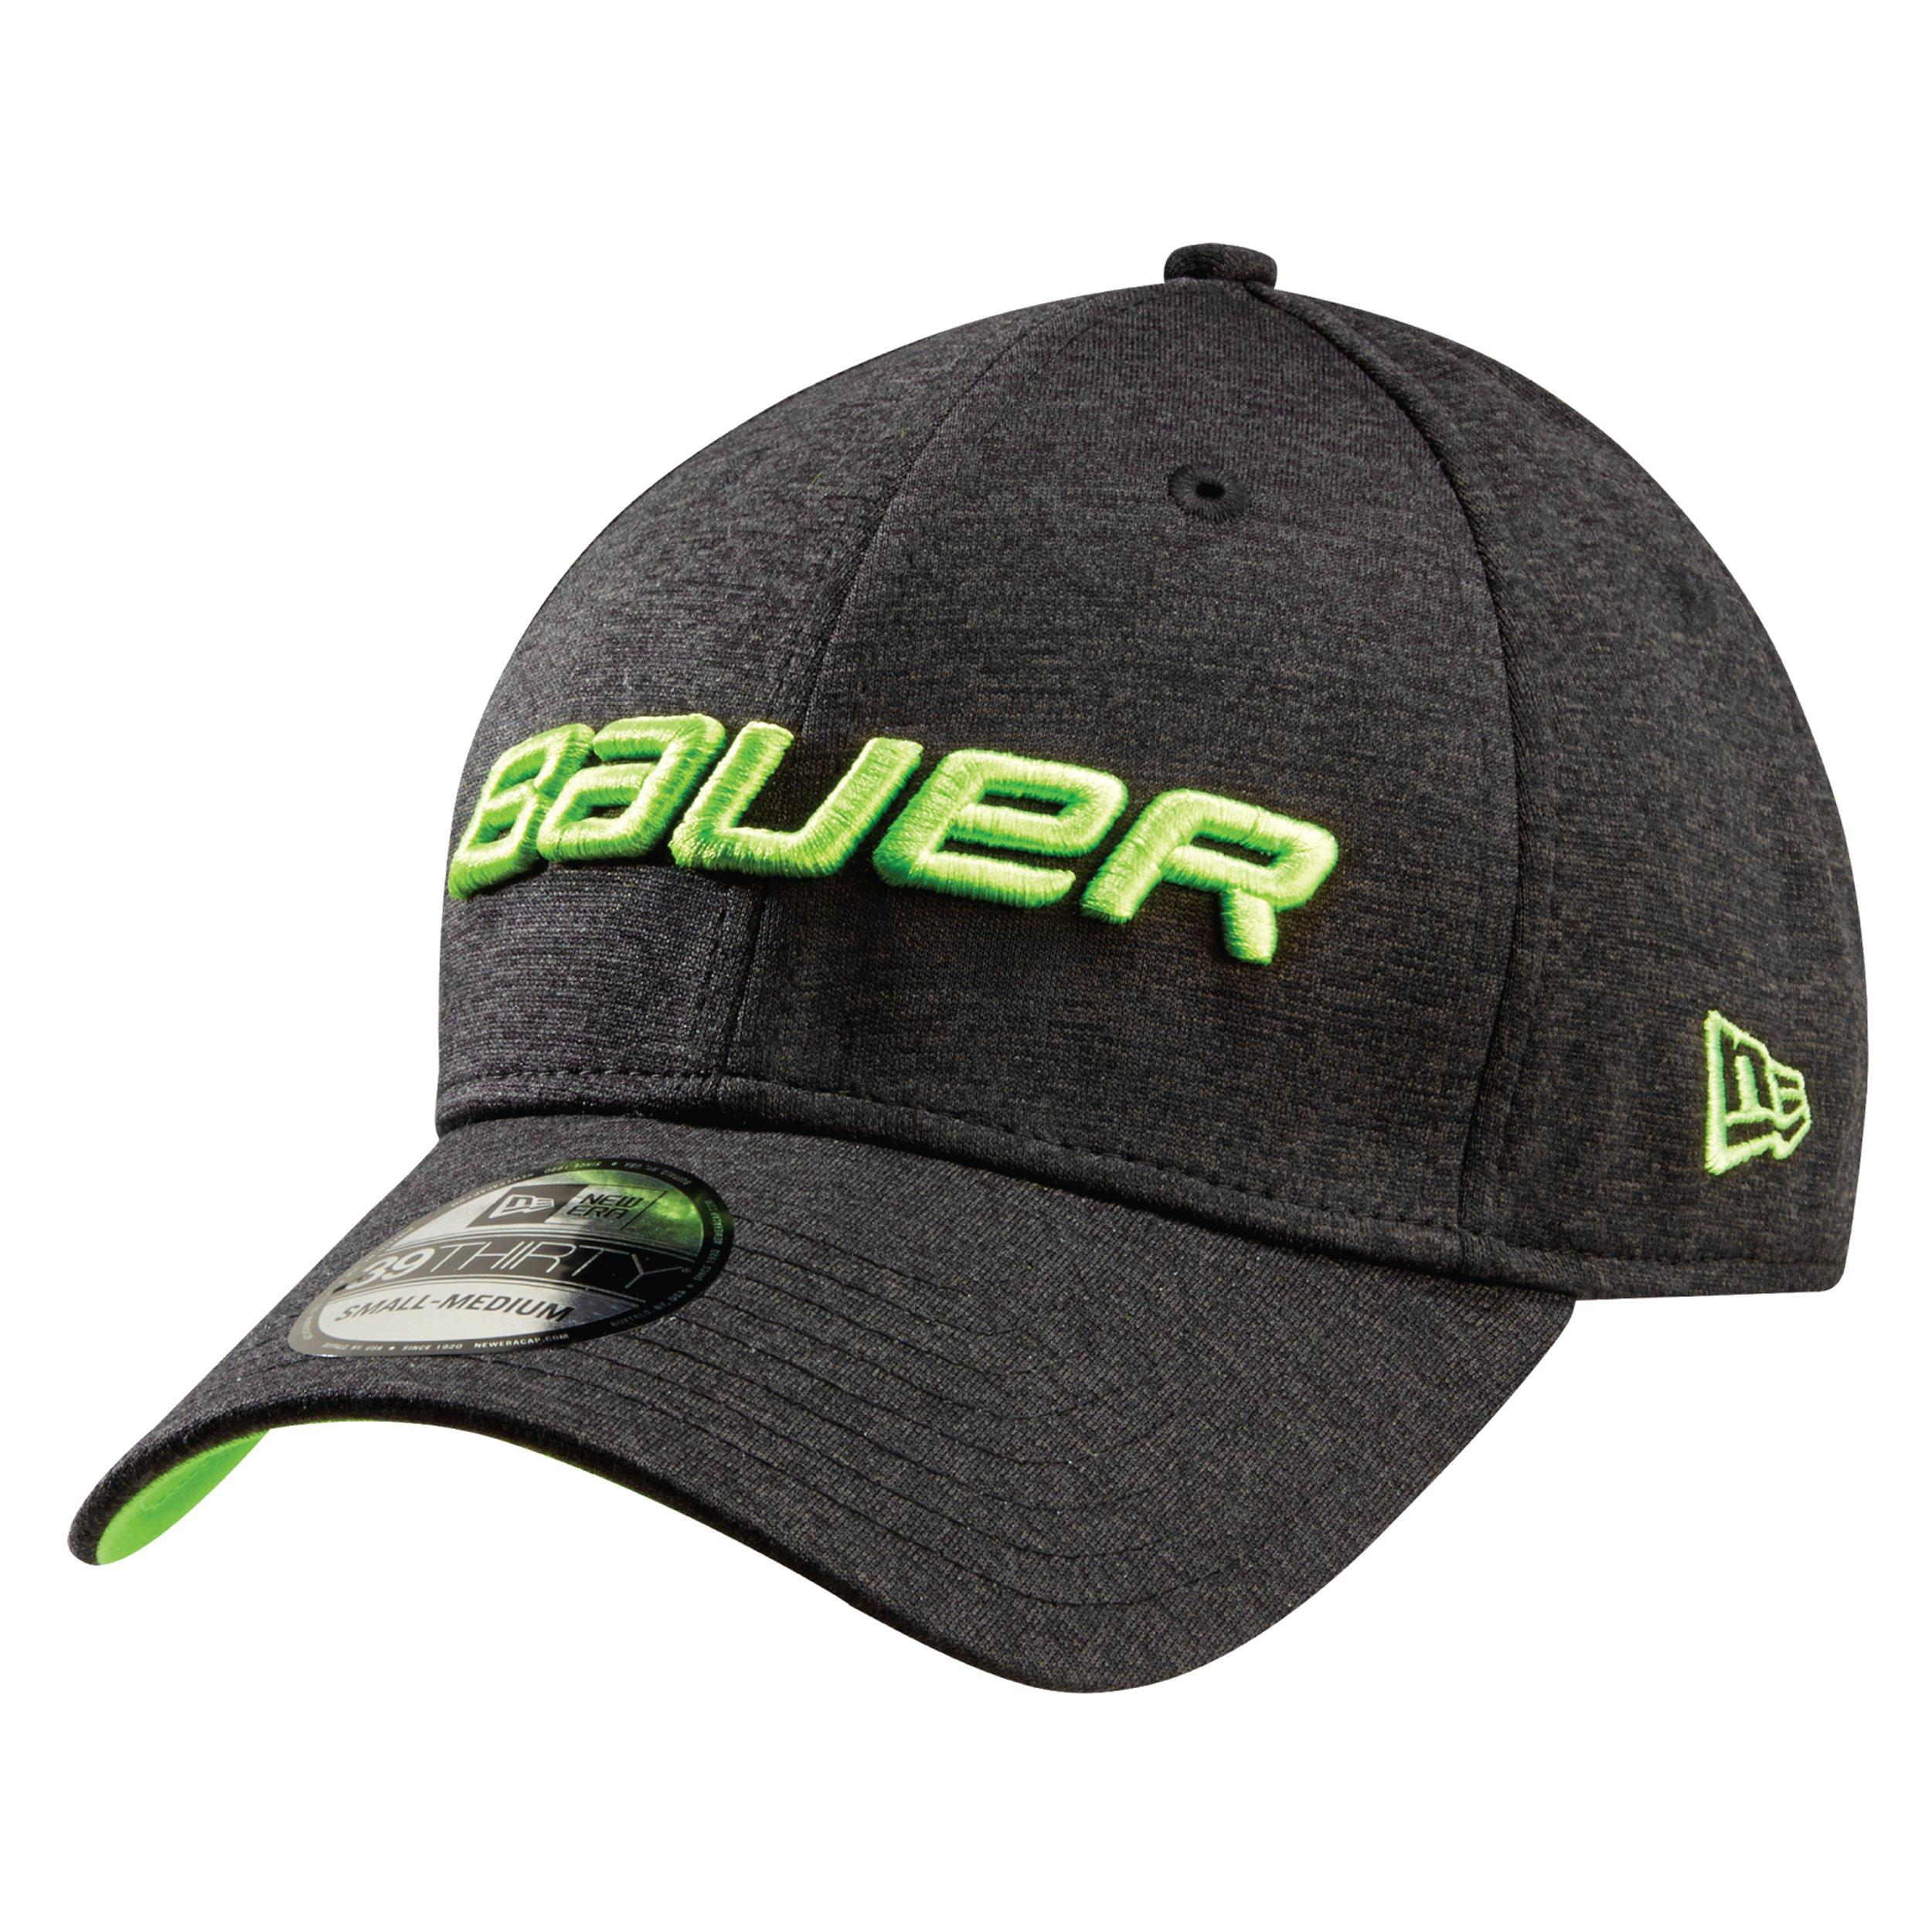 BAUER / New Era® 39Thirty® Color Pop Cap Senior - Lime,,medium